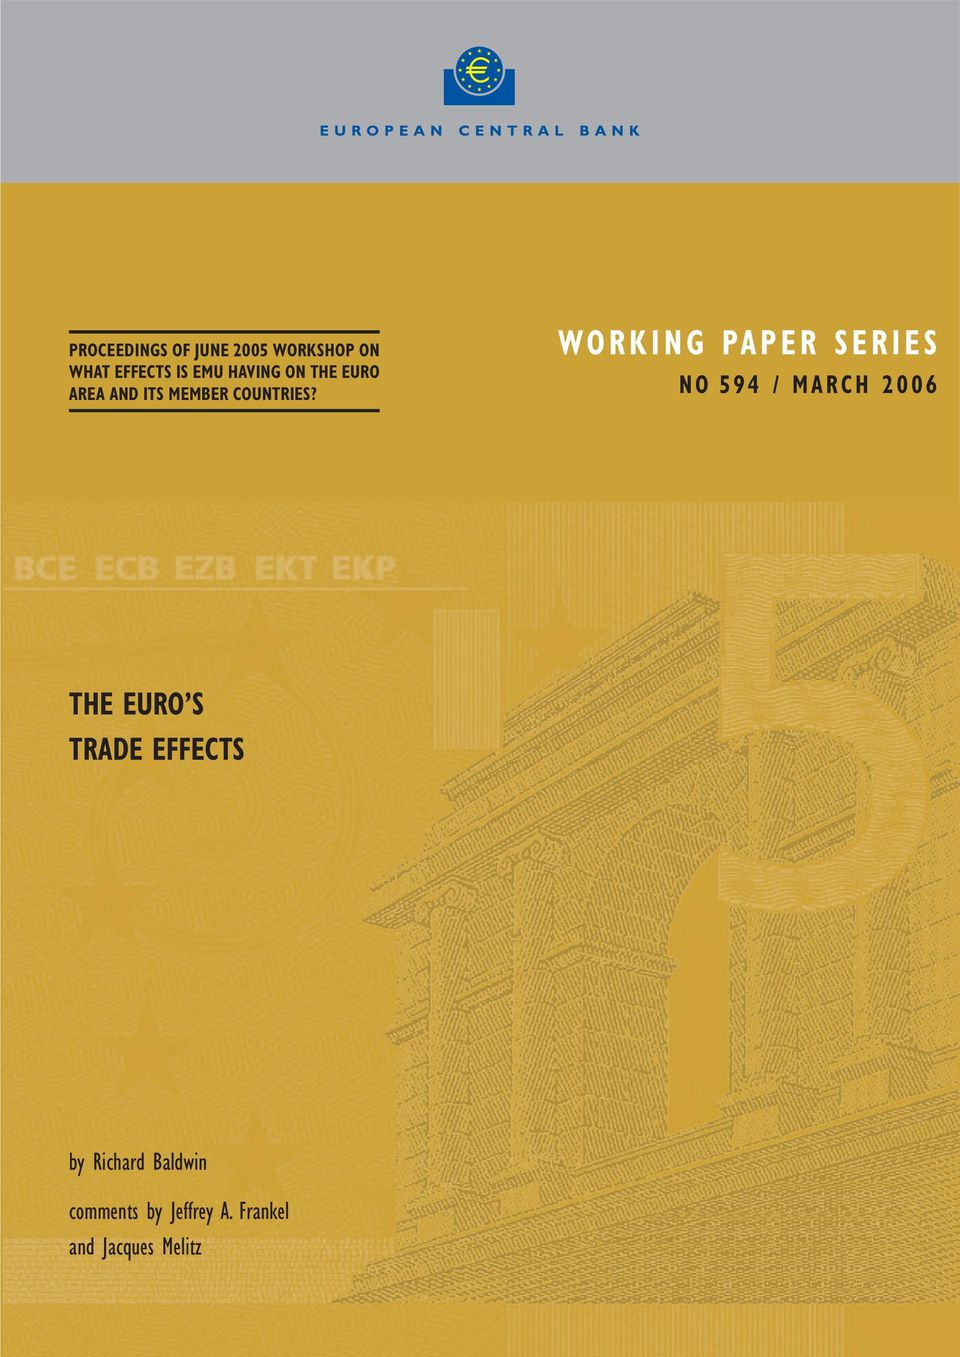 WORKING PAPER SERIES NO 594 / MARCH 2006 THE EURO S TRADE